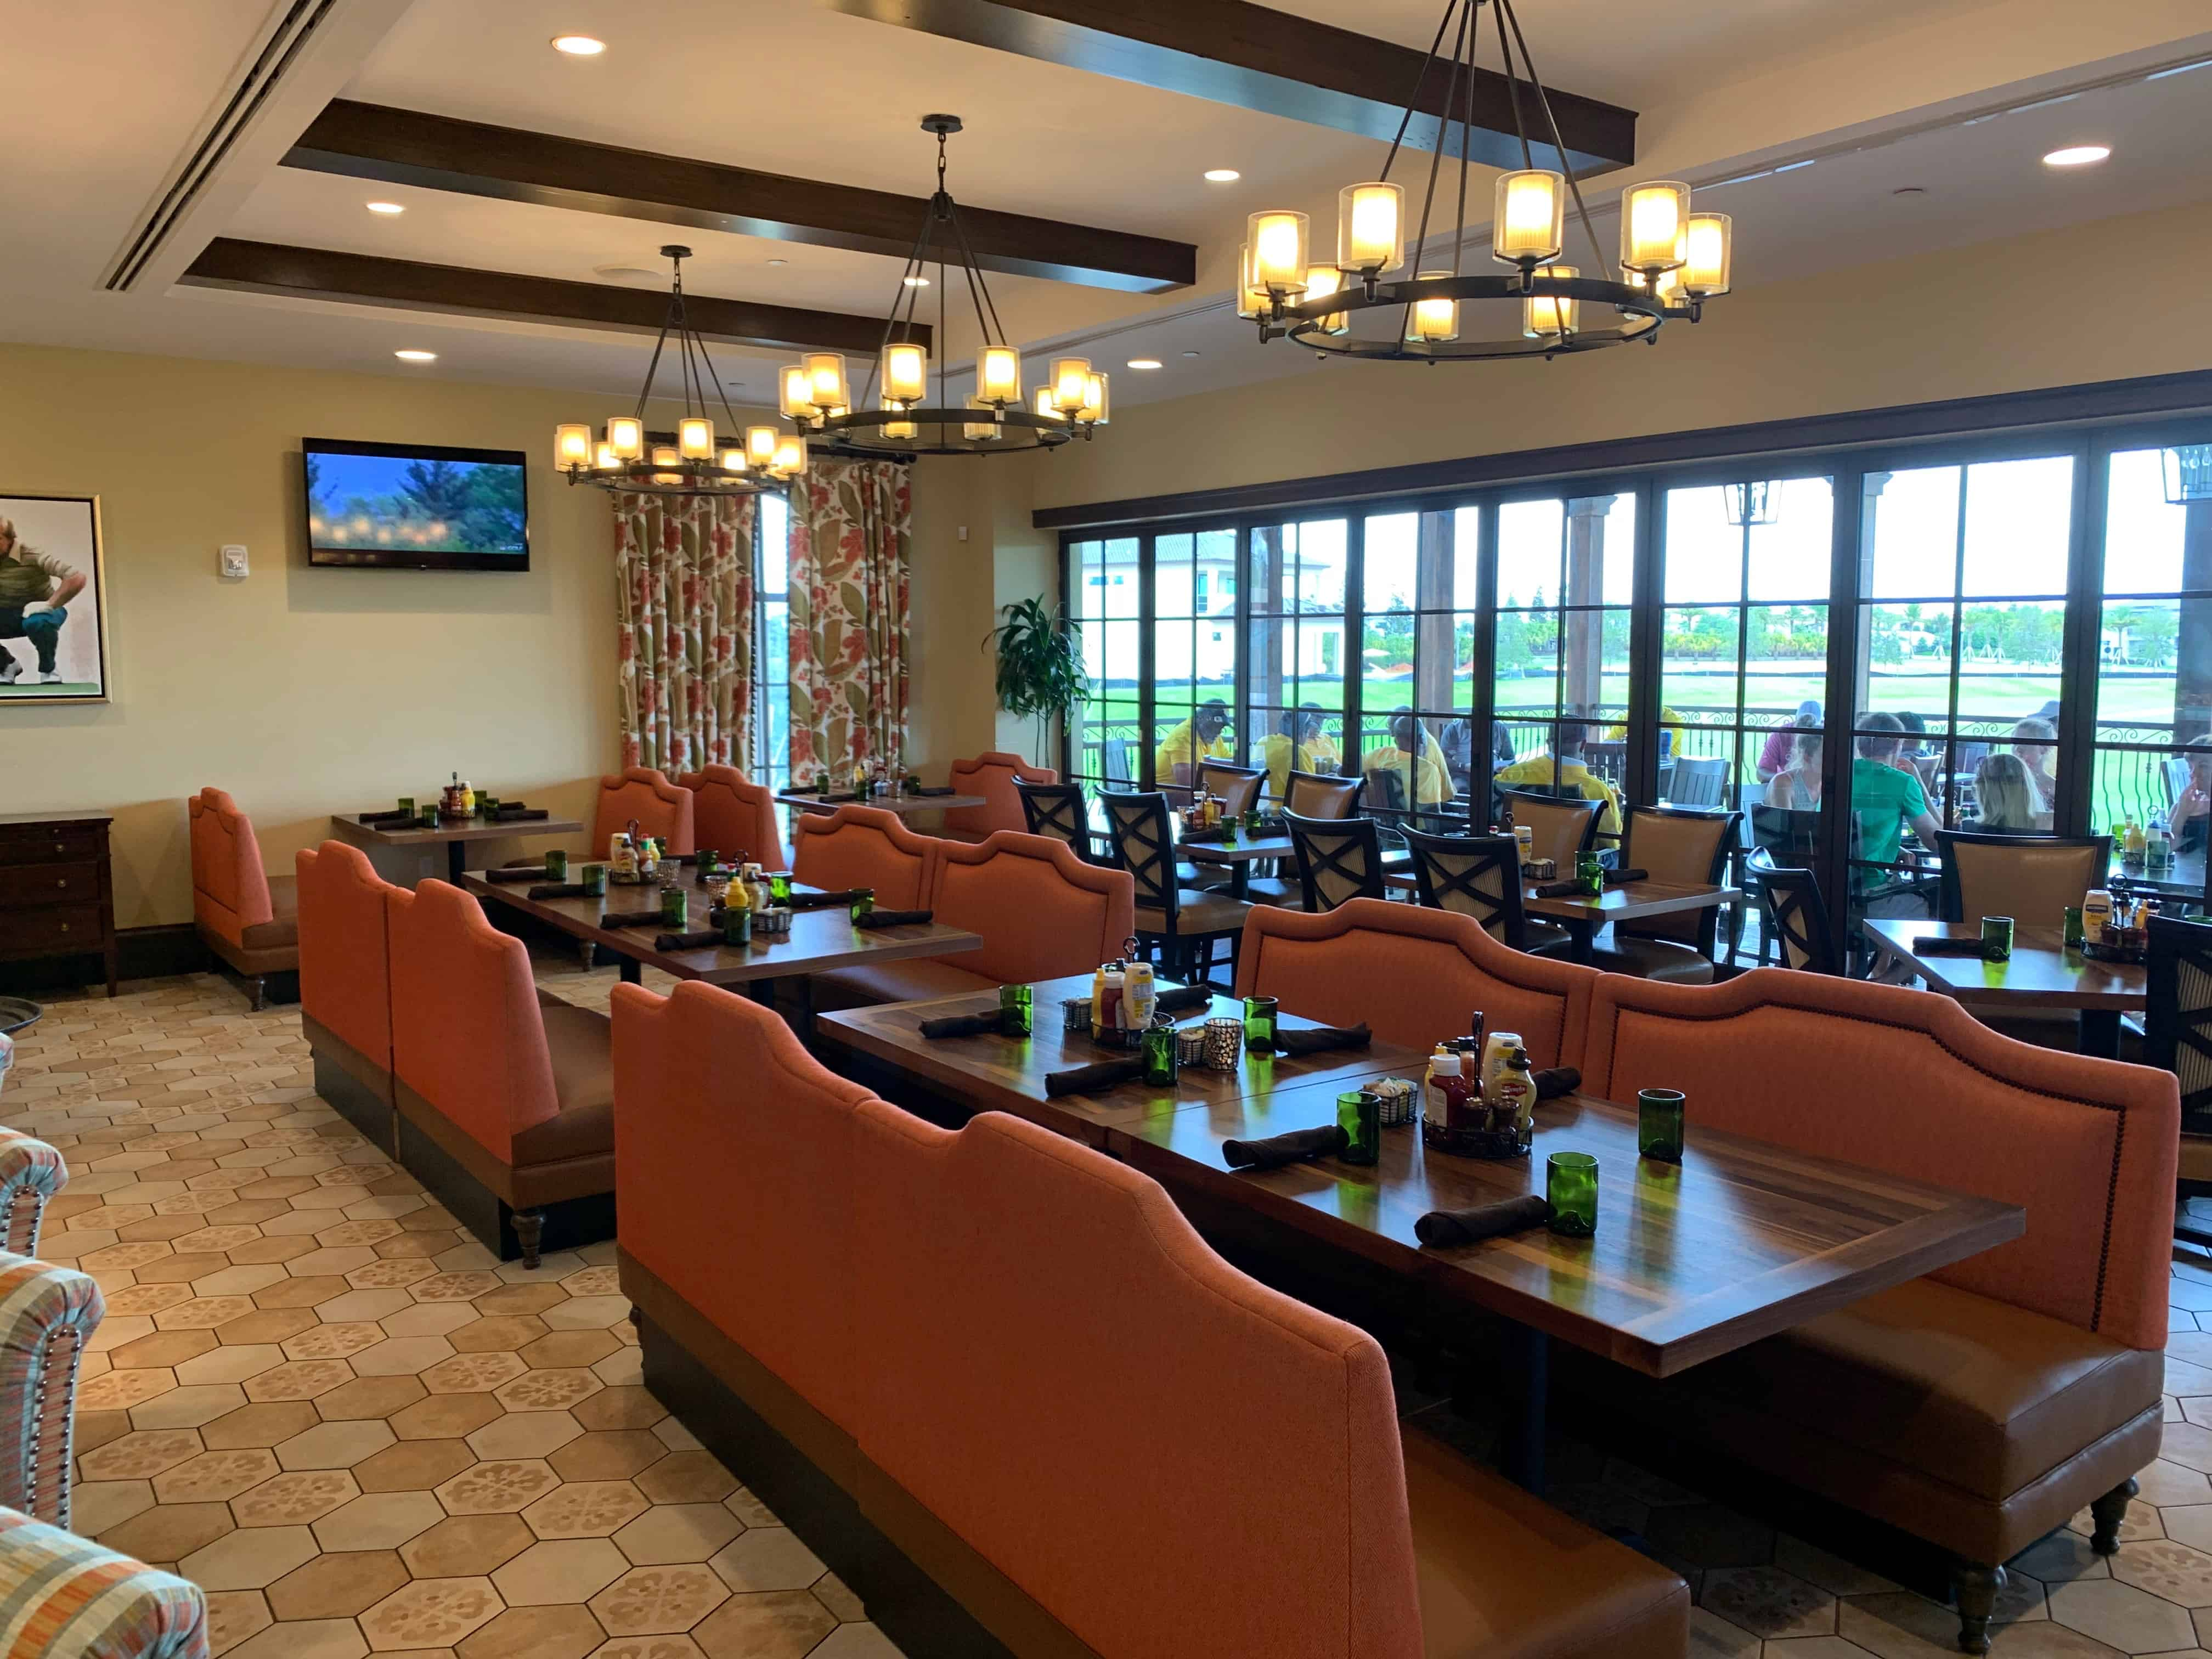 Traditions Restaurant at Reunion Resort